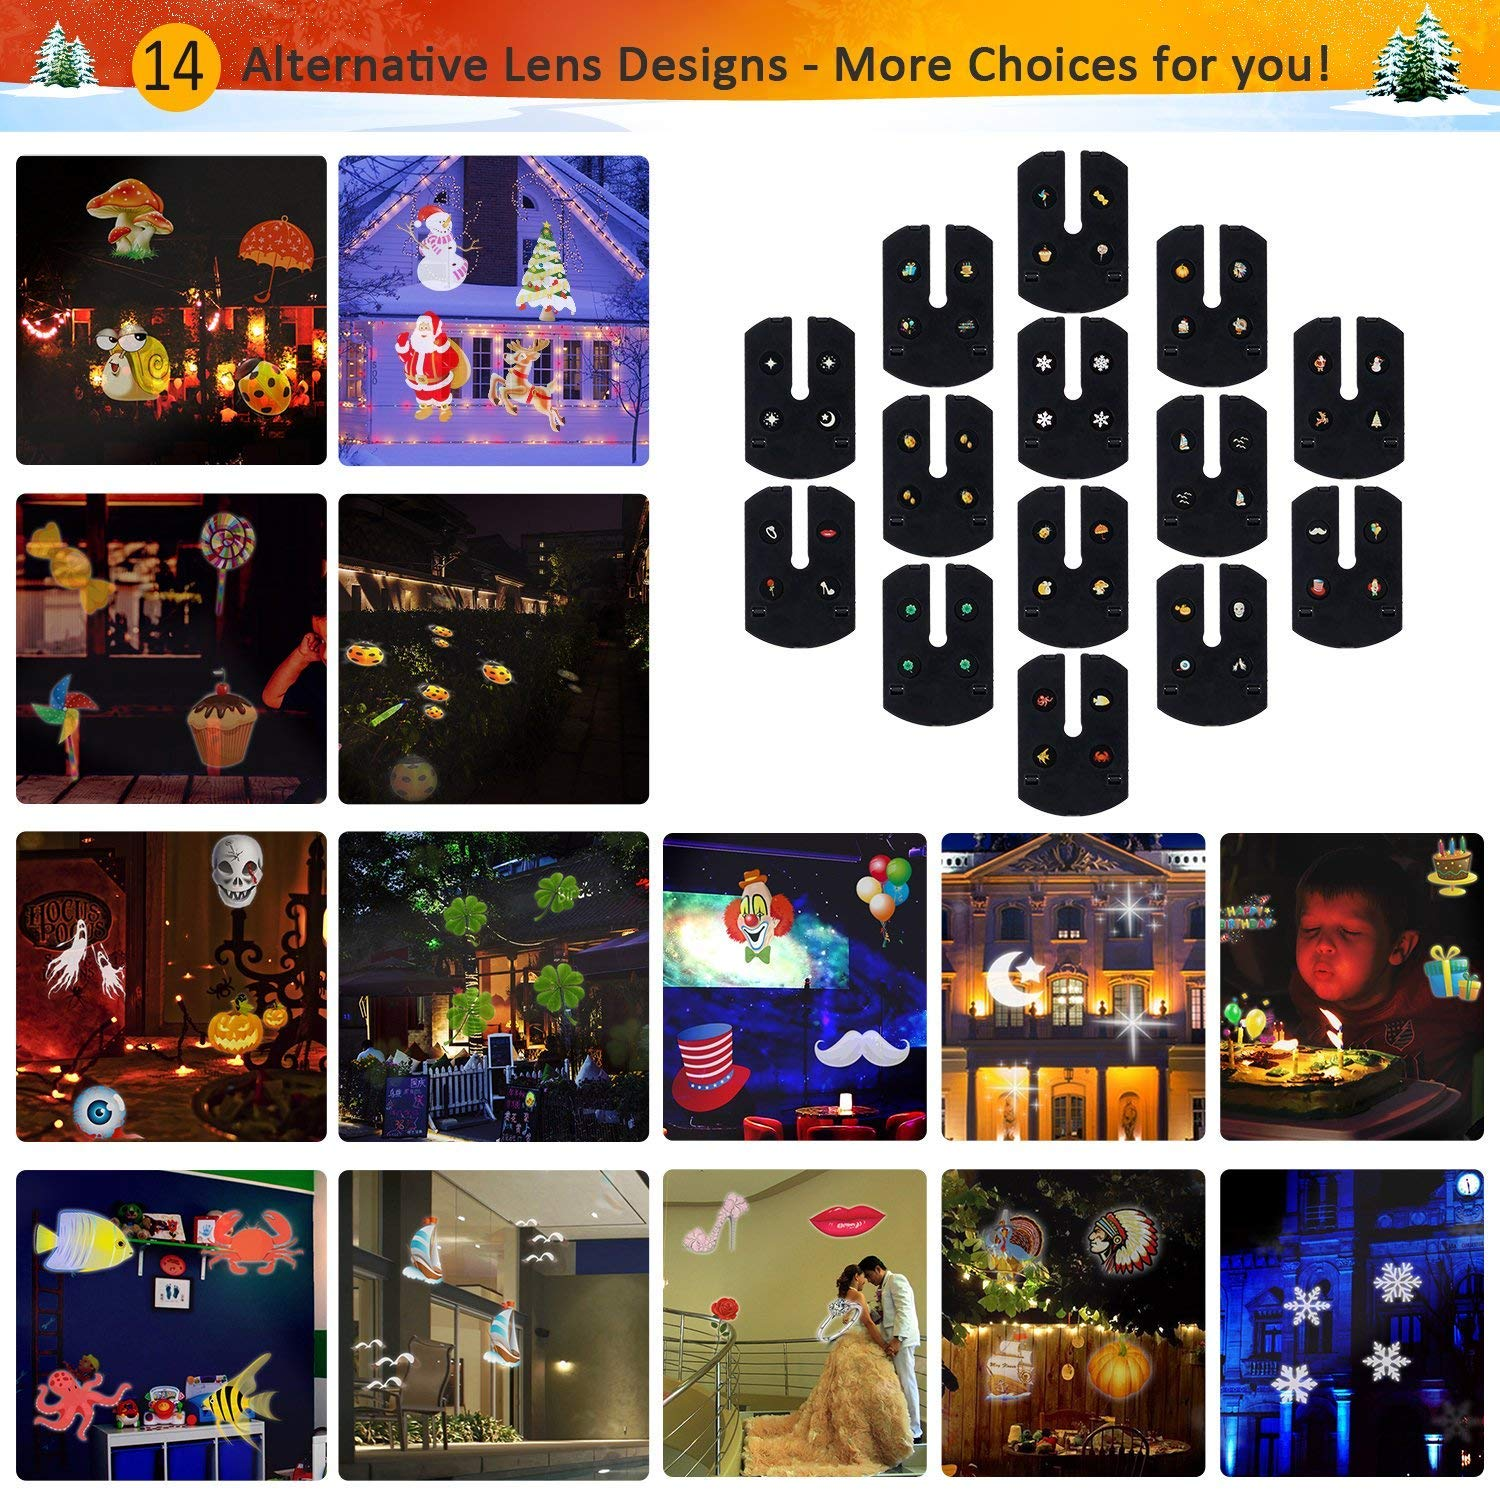 Christmas LED Projector Light, Outdoor Waterproof High Brightness Light Show with 32ft Cable & Remote Control for Christmas, Party and Holiday Decorations (16 Patterns) by Tunnkit (Image #2)